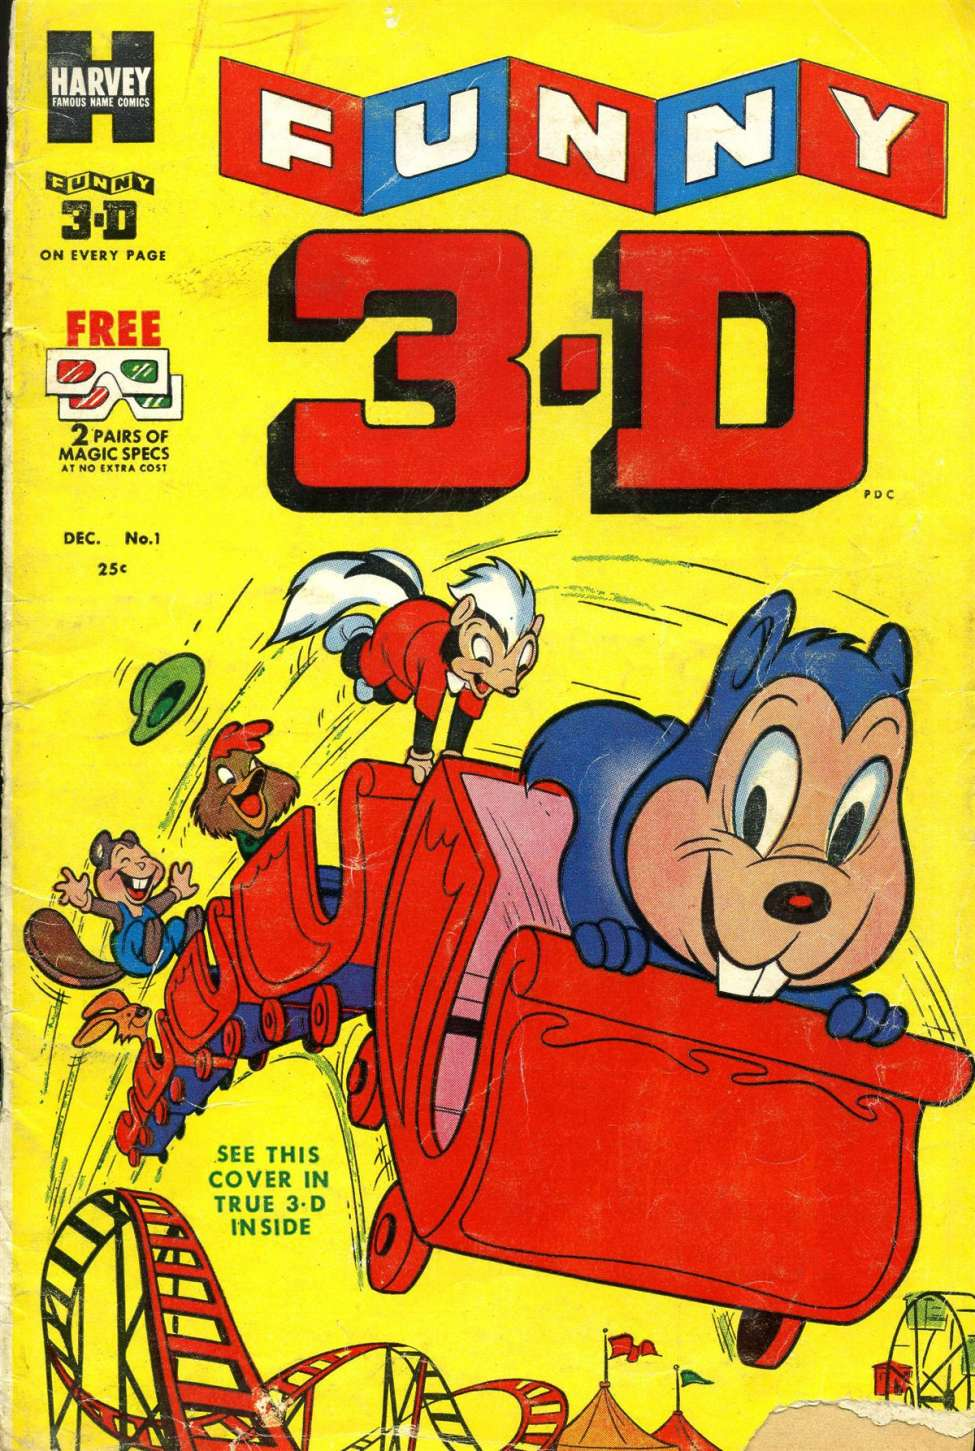 Comic Book Cover For Funny 3-D 1